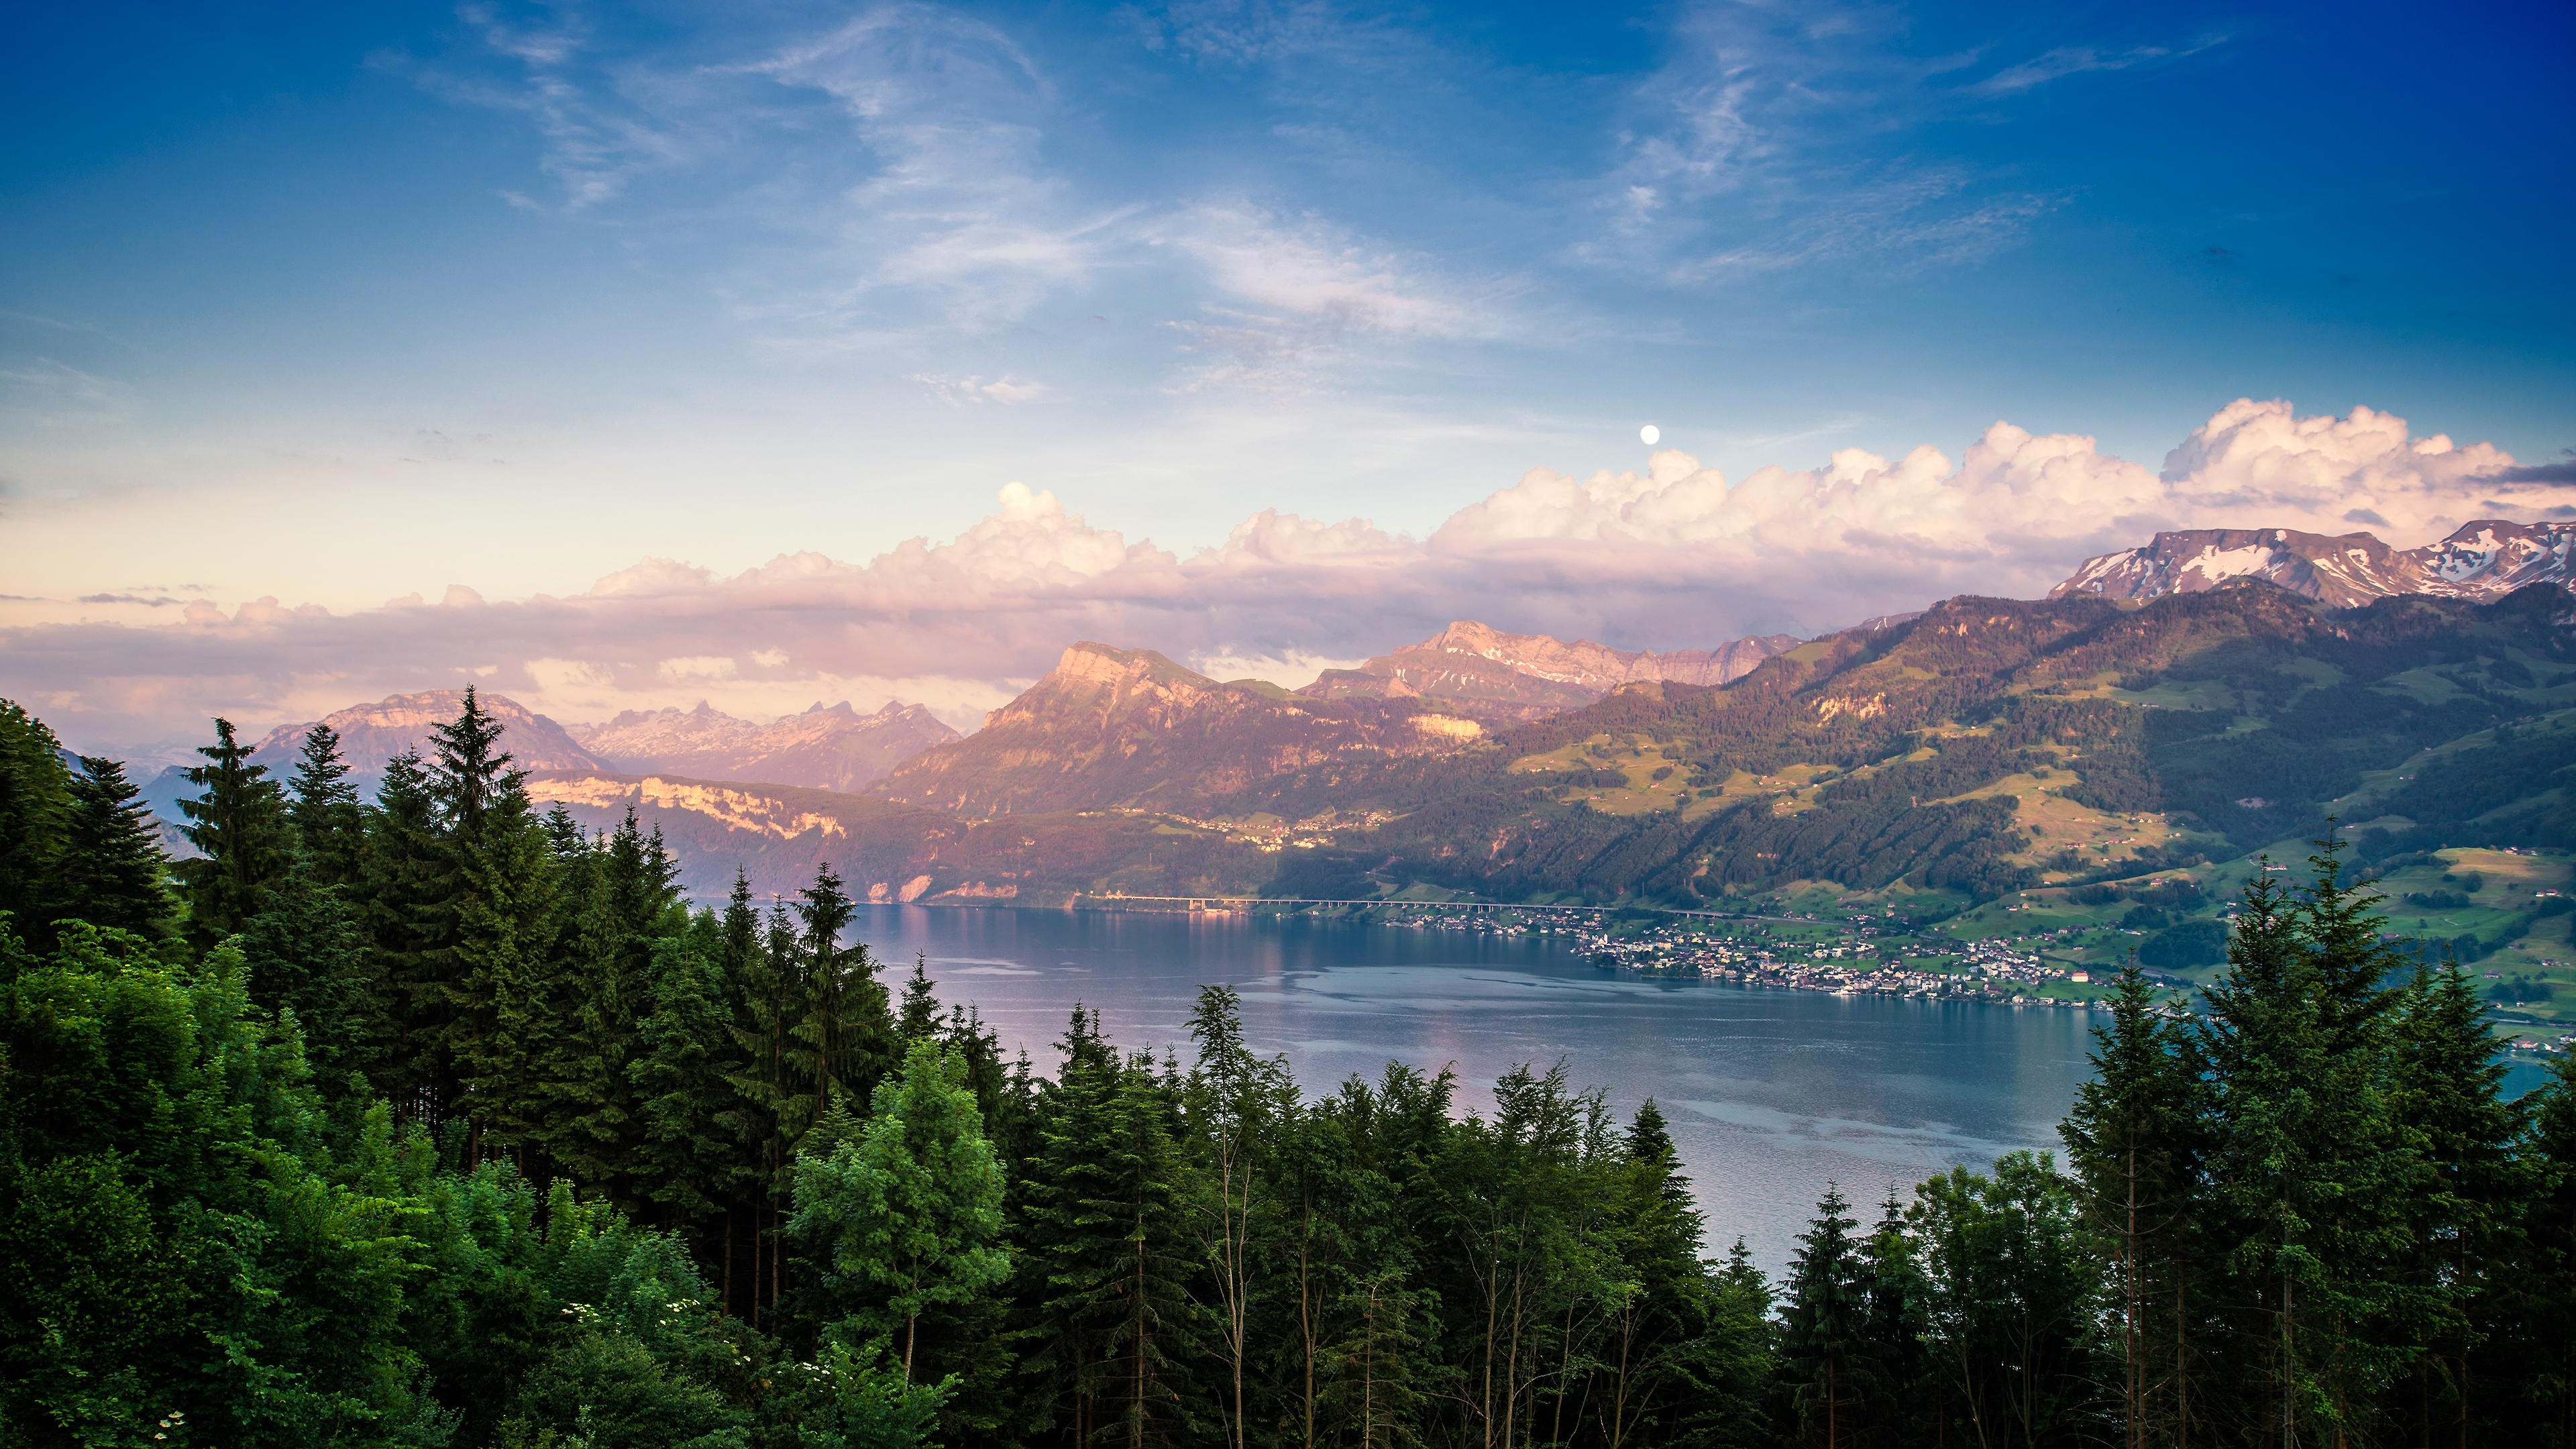 lake zurich 4k 1551644224 - Lake Zurich 4k - nature wallpapers, mountains wallpapers, lake wallpapers, hd-wallpapers, 4k-wallpapers